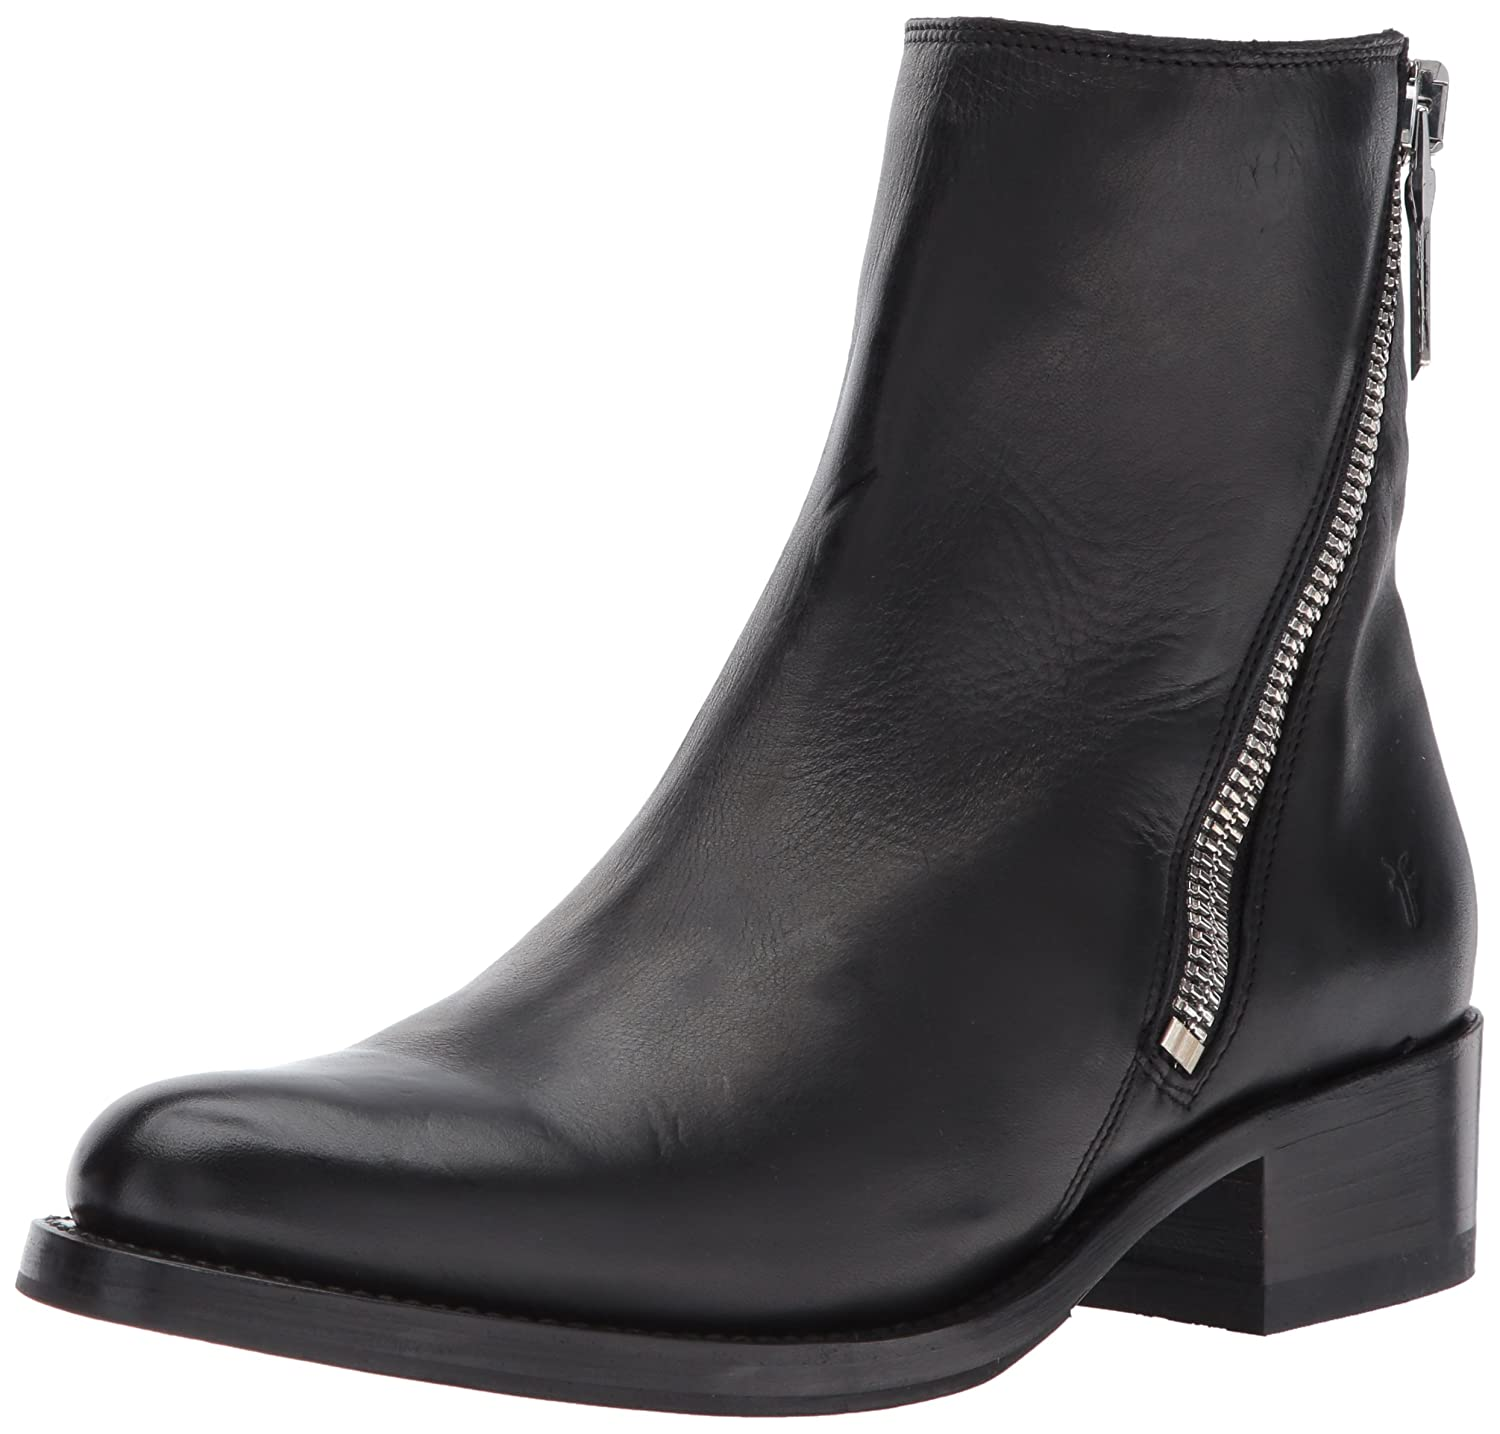 FRYE Women's Demi Zip Bootie Boot B01N0XA5NJ 10 B(M) US|Black Polished Soft Full Grain